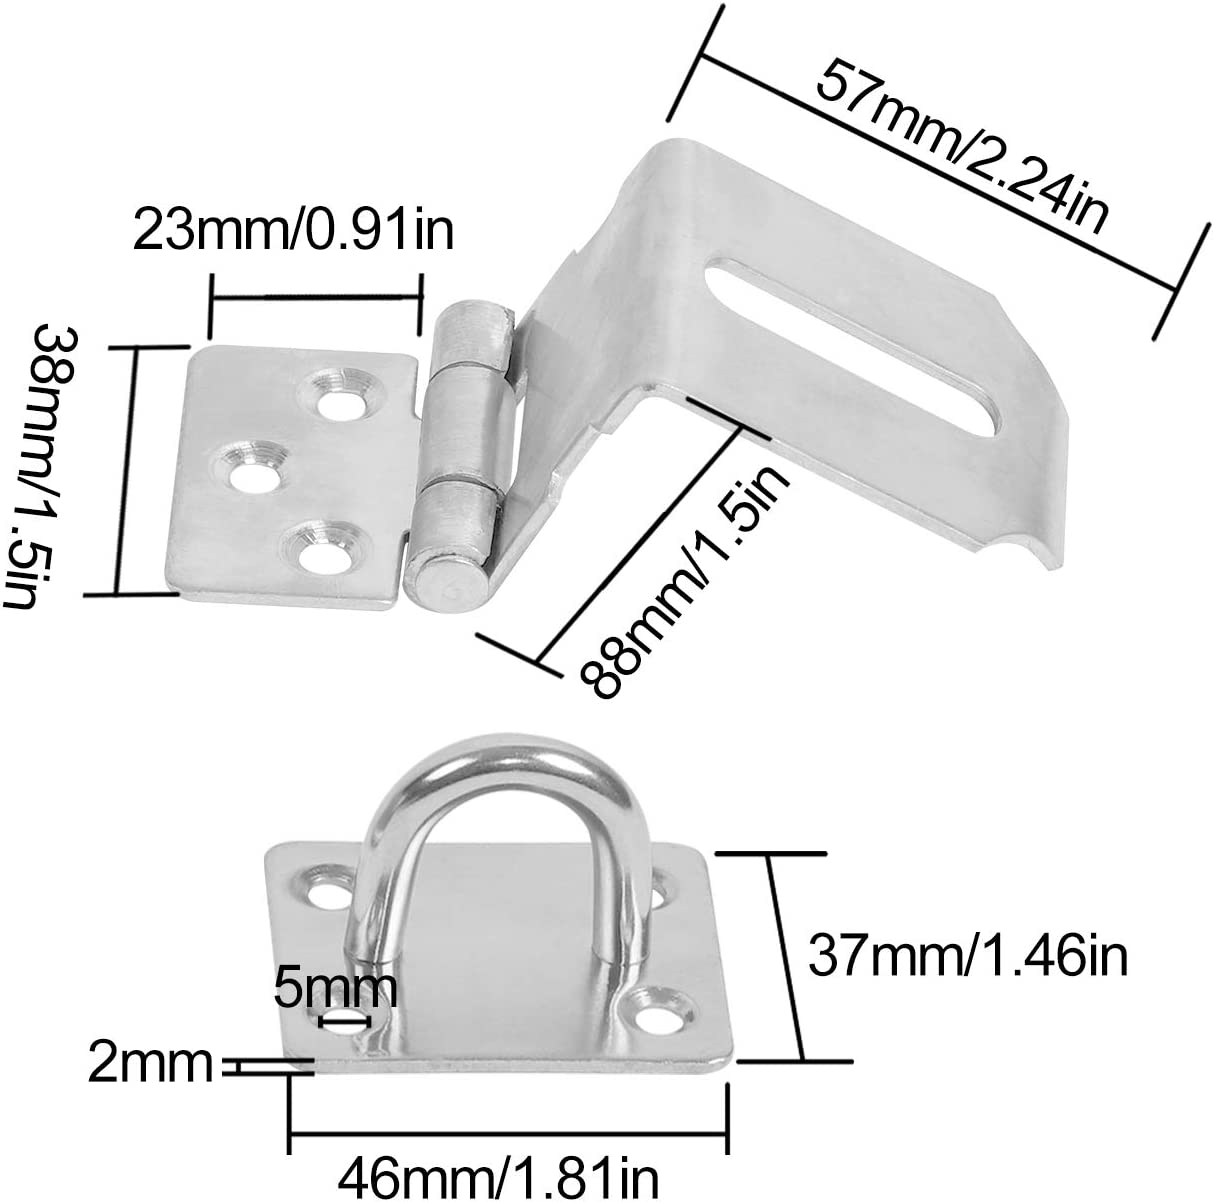 4mm Extra Thick Door Gate Bolt Lock with 32 Mounting Screws KINJOEK Stainless Steel Security Door Clasp Hasp Lock Latch 4 PCS 5 Inch Padlock Hasp